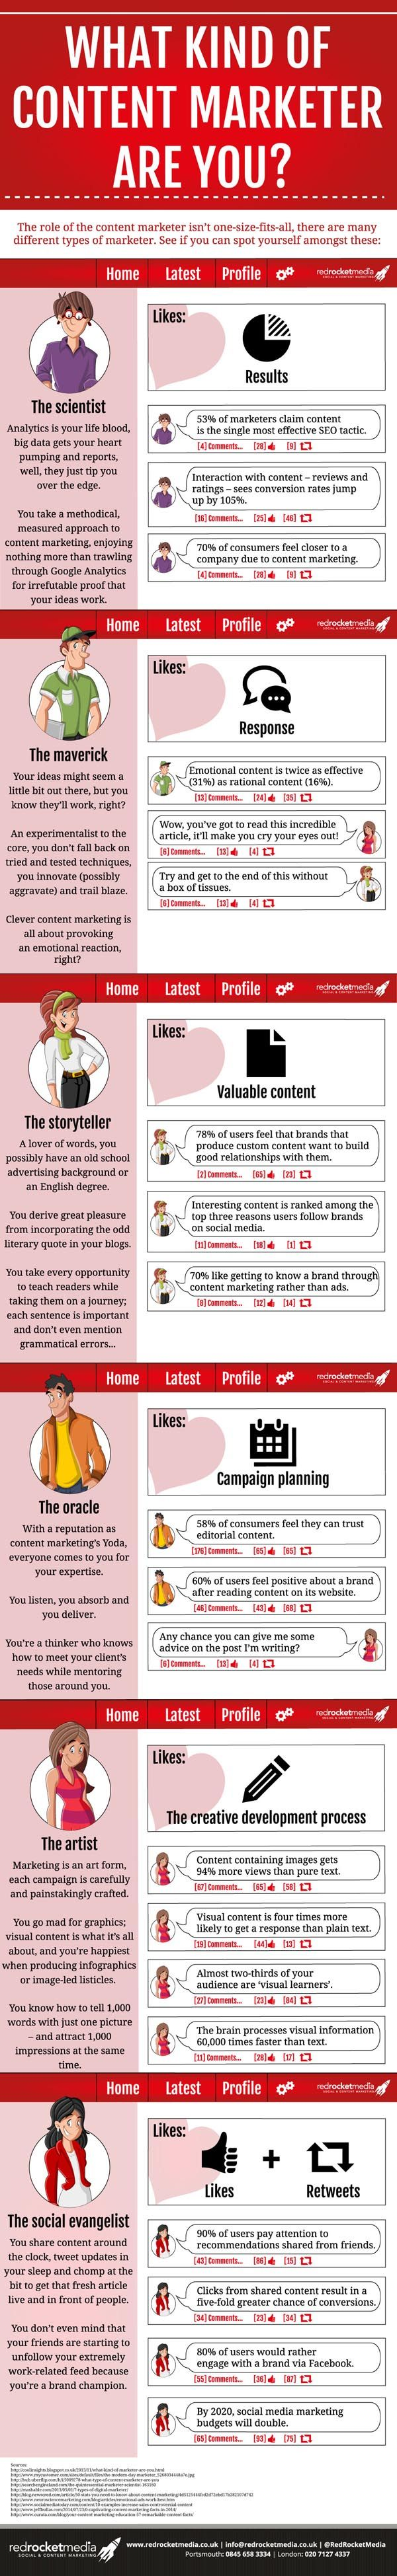 Are you a content marketer? #ContentMarketing #Infographic